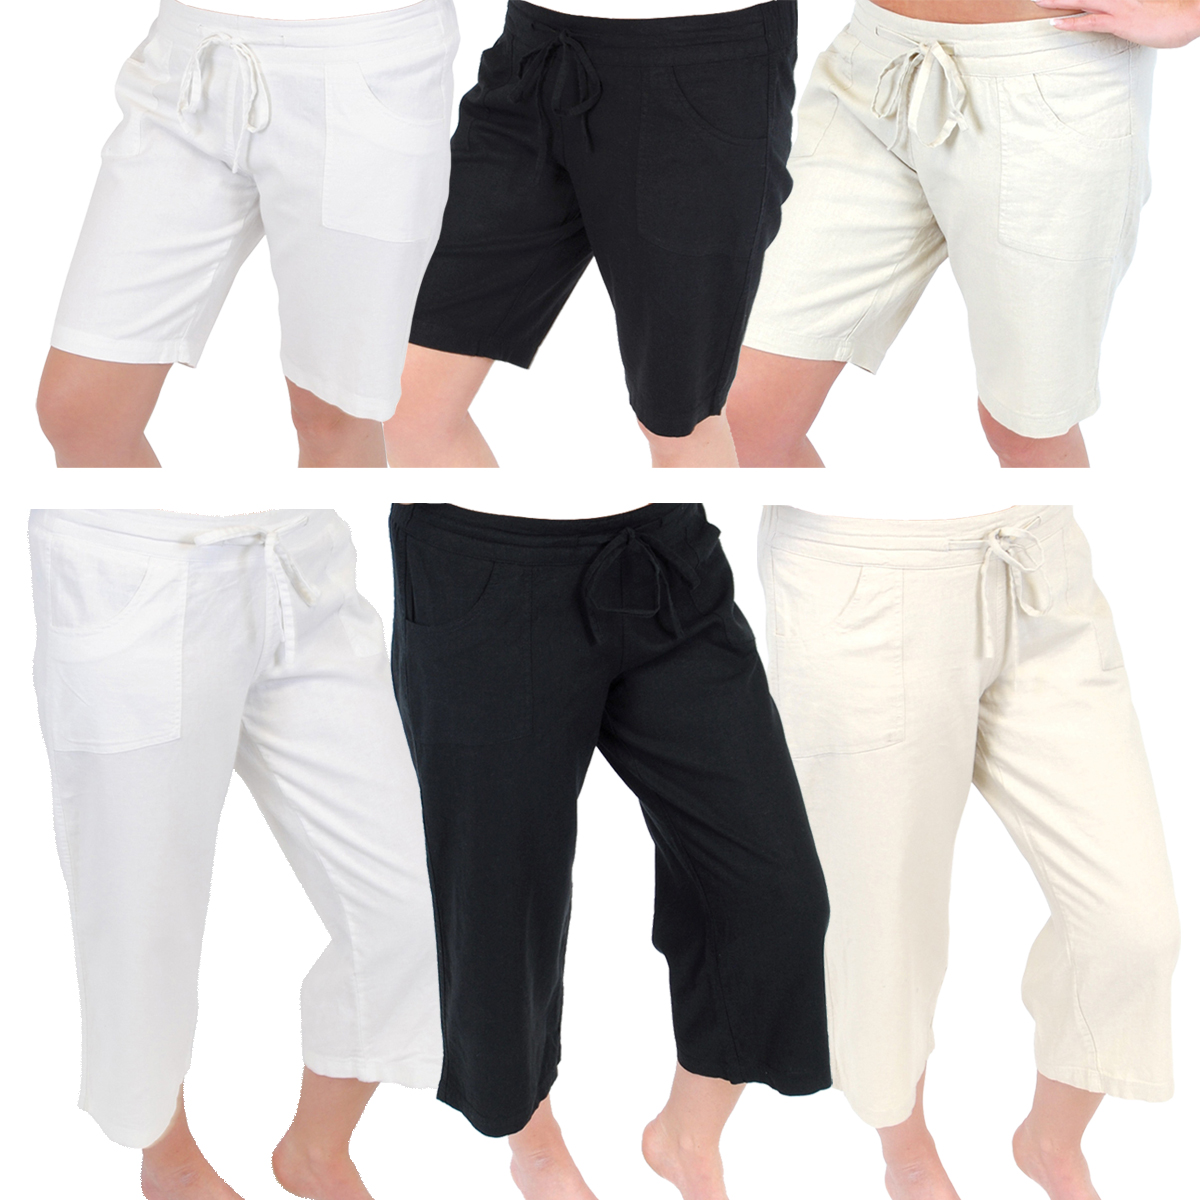 3/4 Pants & Capris Online in India available at Best Price at Voonik India. Checkout variety of 3/4 Pants & Capris for Discount Cash on Delivery Latest Designs.